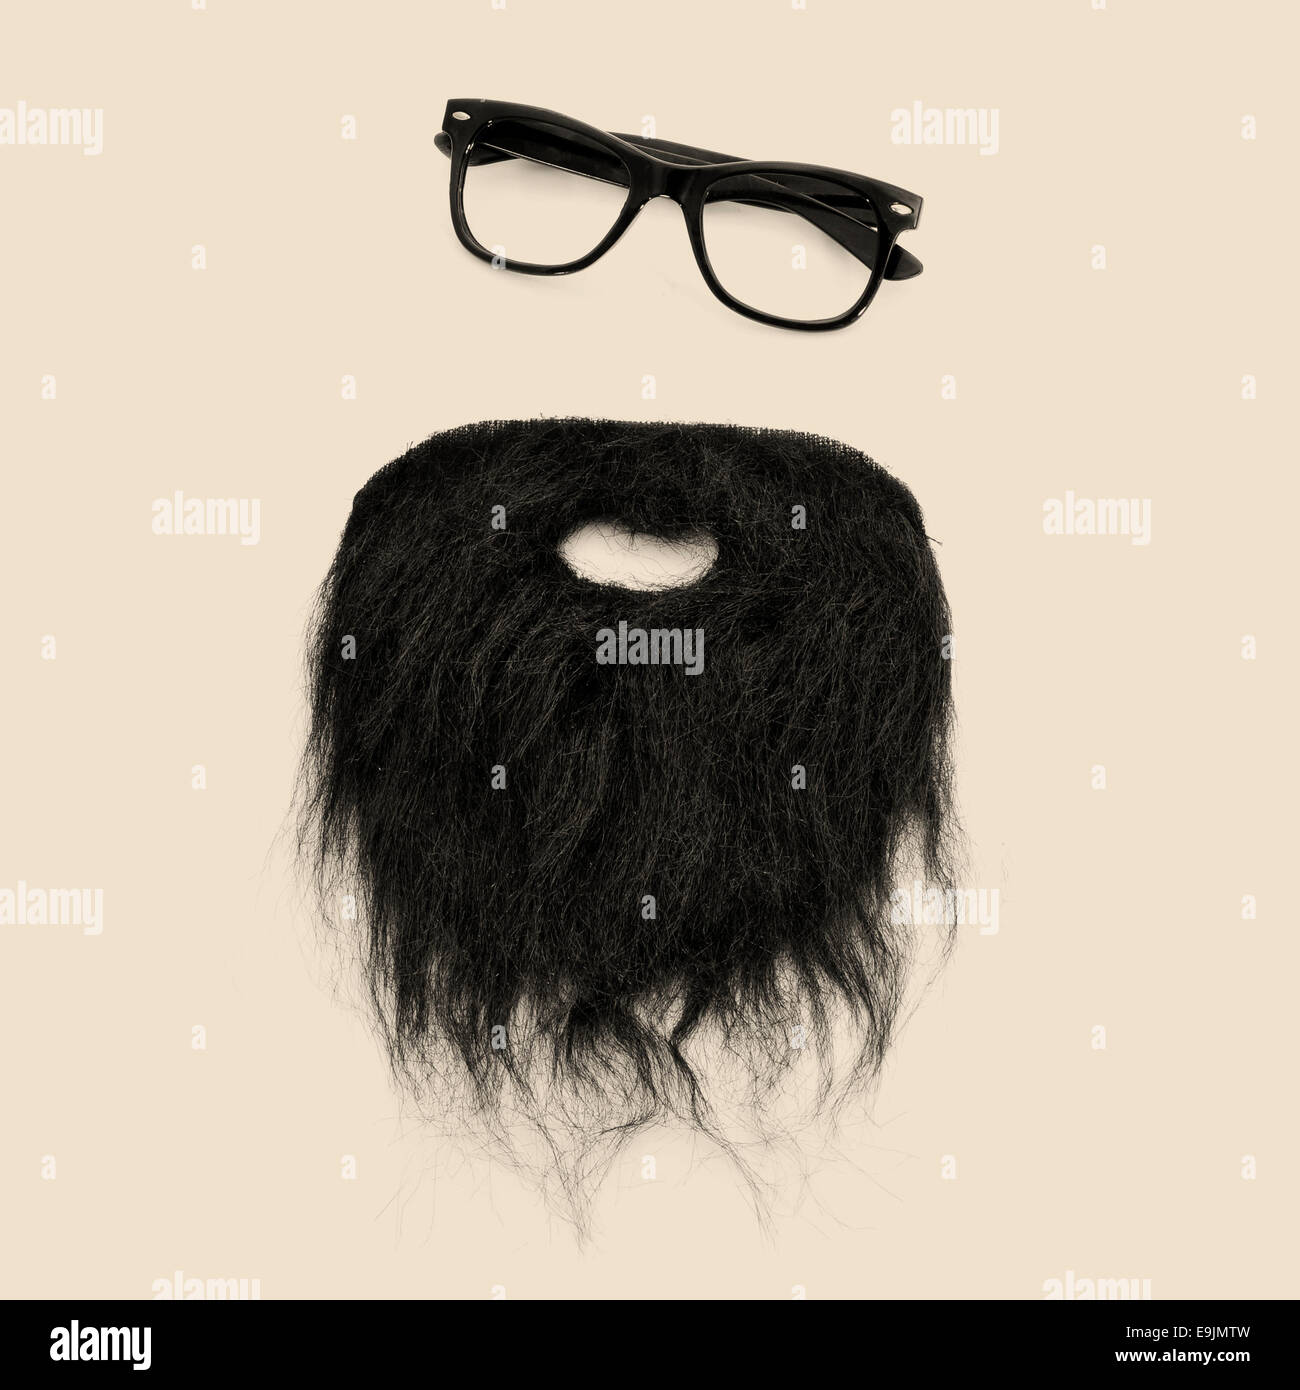 a pair of retro eyeglasses and a beard forming a man face on a beige background - Stock Image